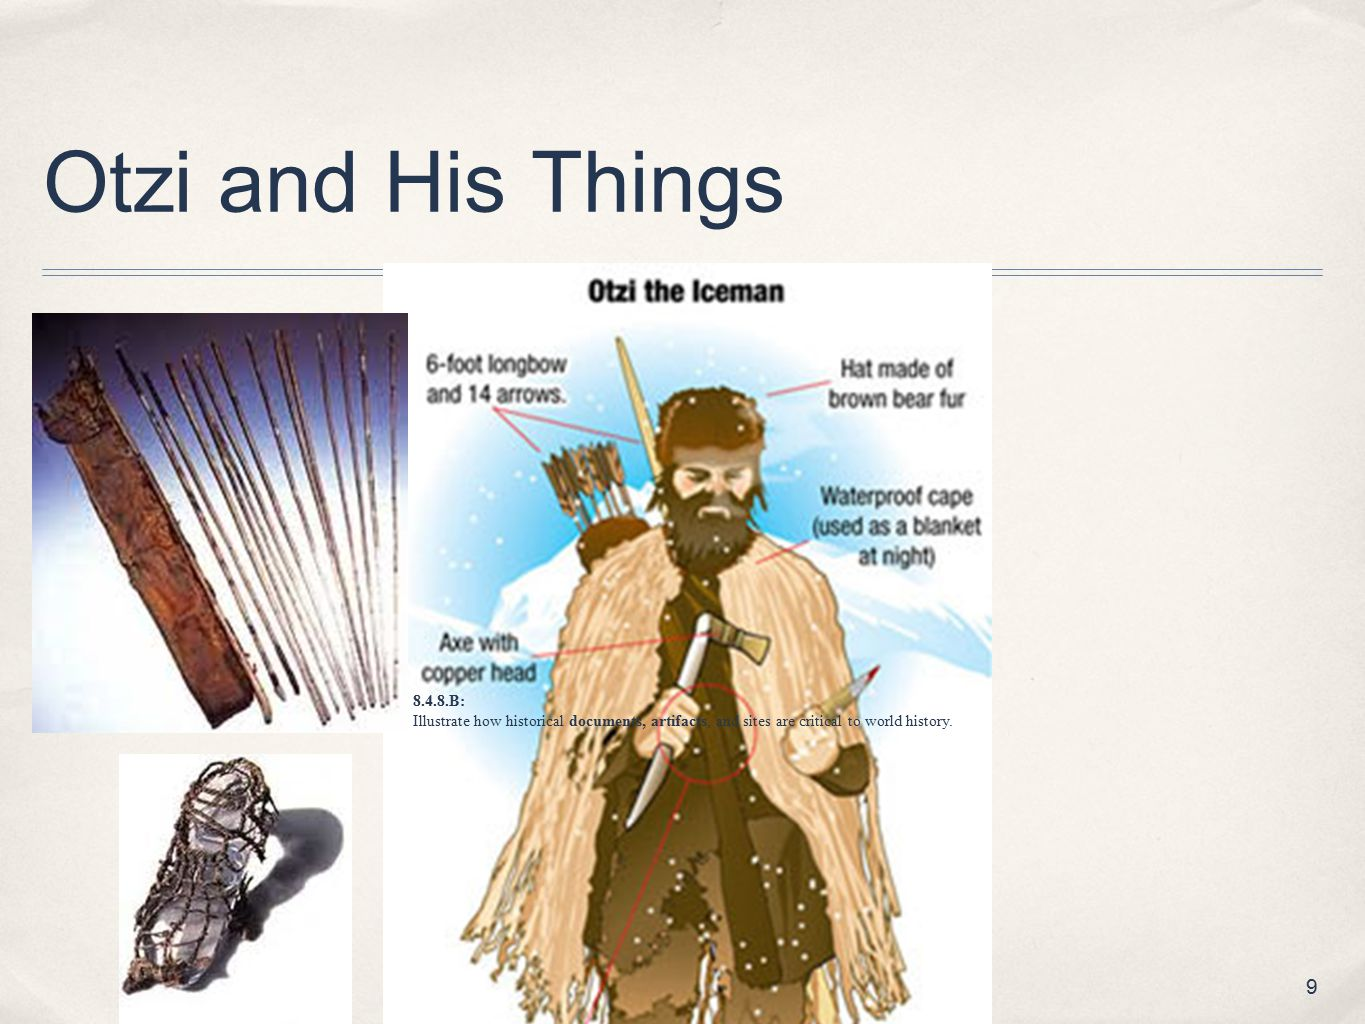 Otzi and His Things 8.4.8.B: Illustrate how historical documents, artifacts, and sites are critical to world history.